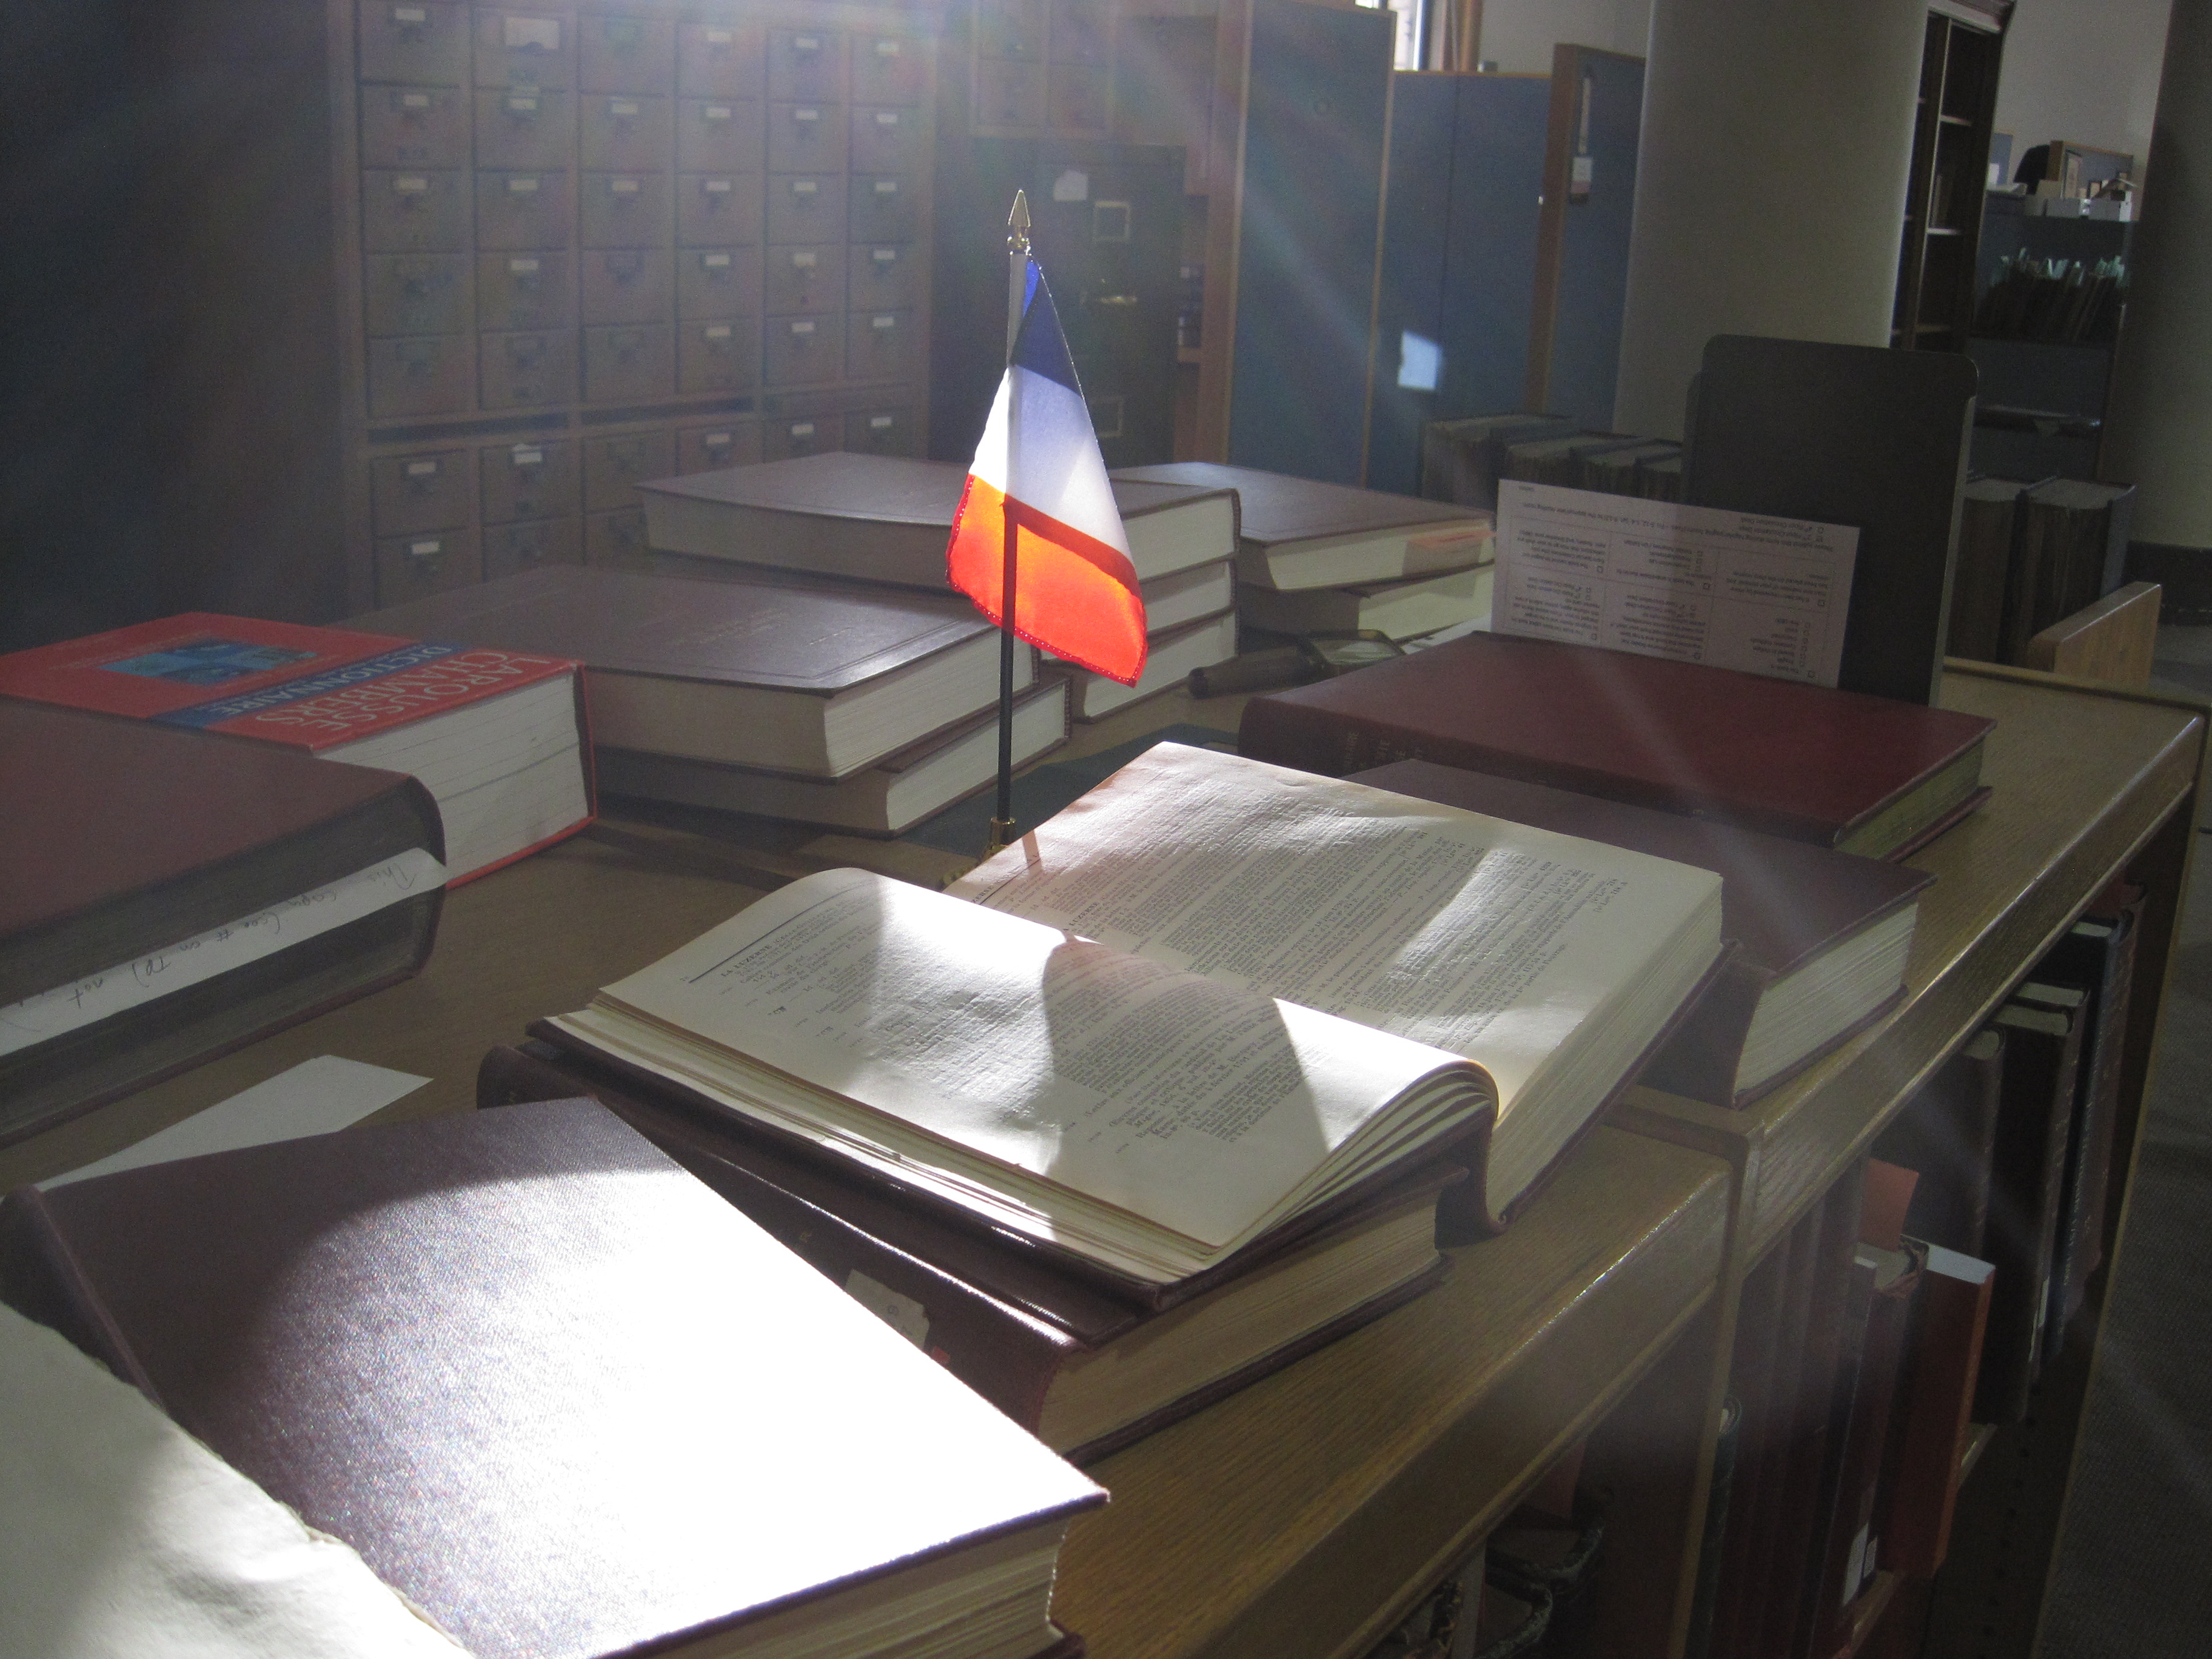 Table Setting In French French Pamphlet Collections At The Newberry Library A Project